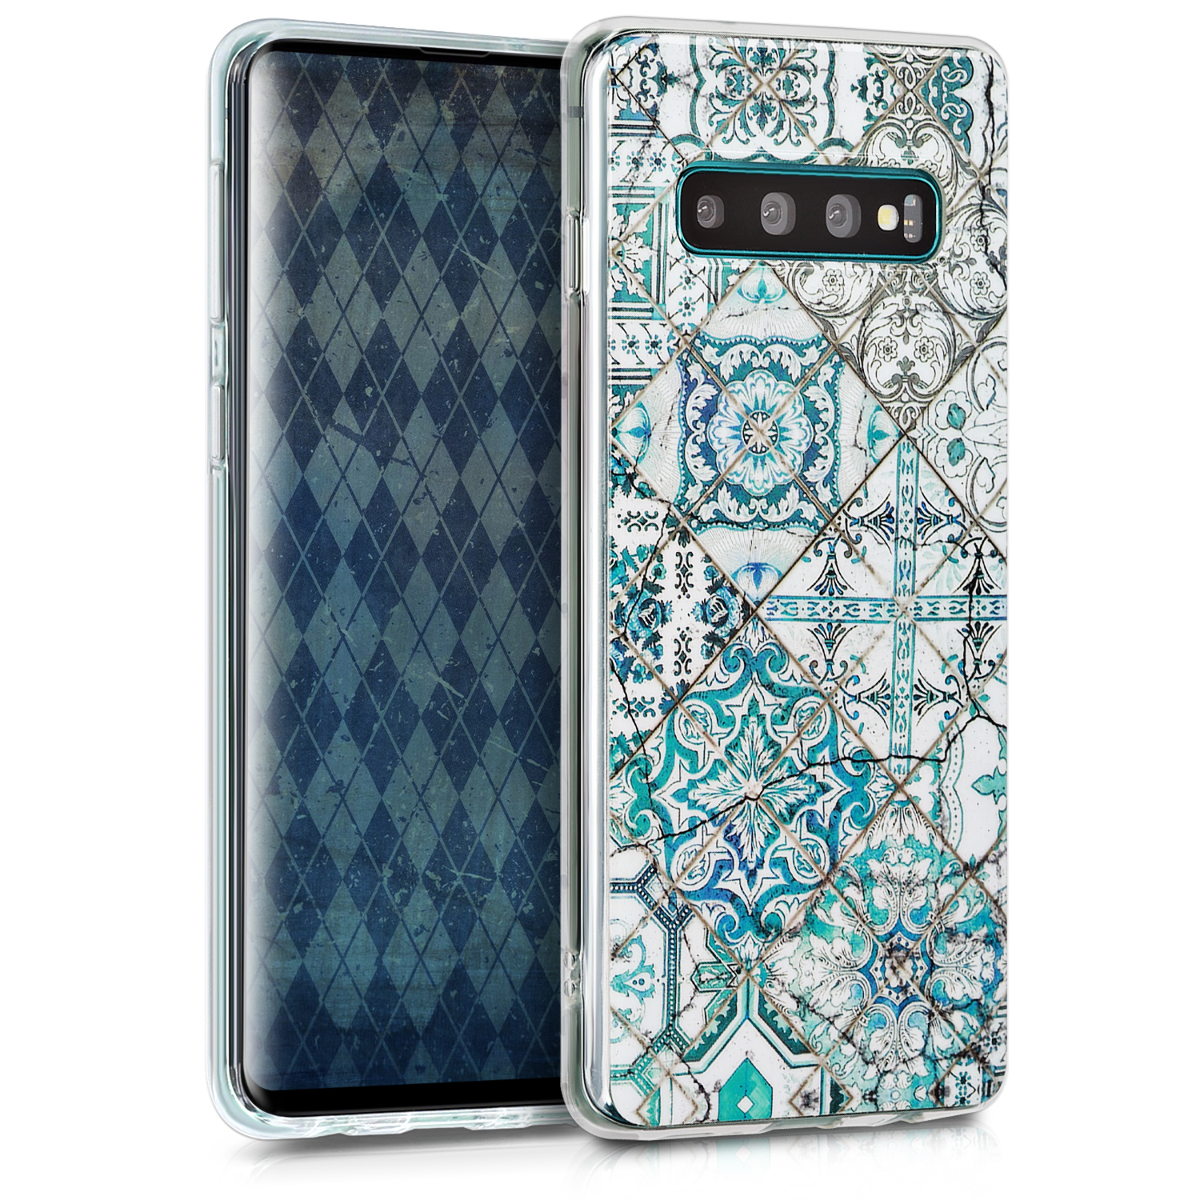 KW Θήκη Σιλικόνης Samsung Galaxy S10 - IMD Design - Blue / Grey / White (47449.08)